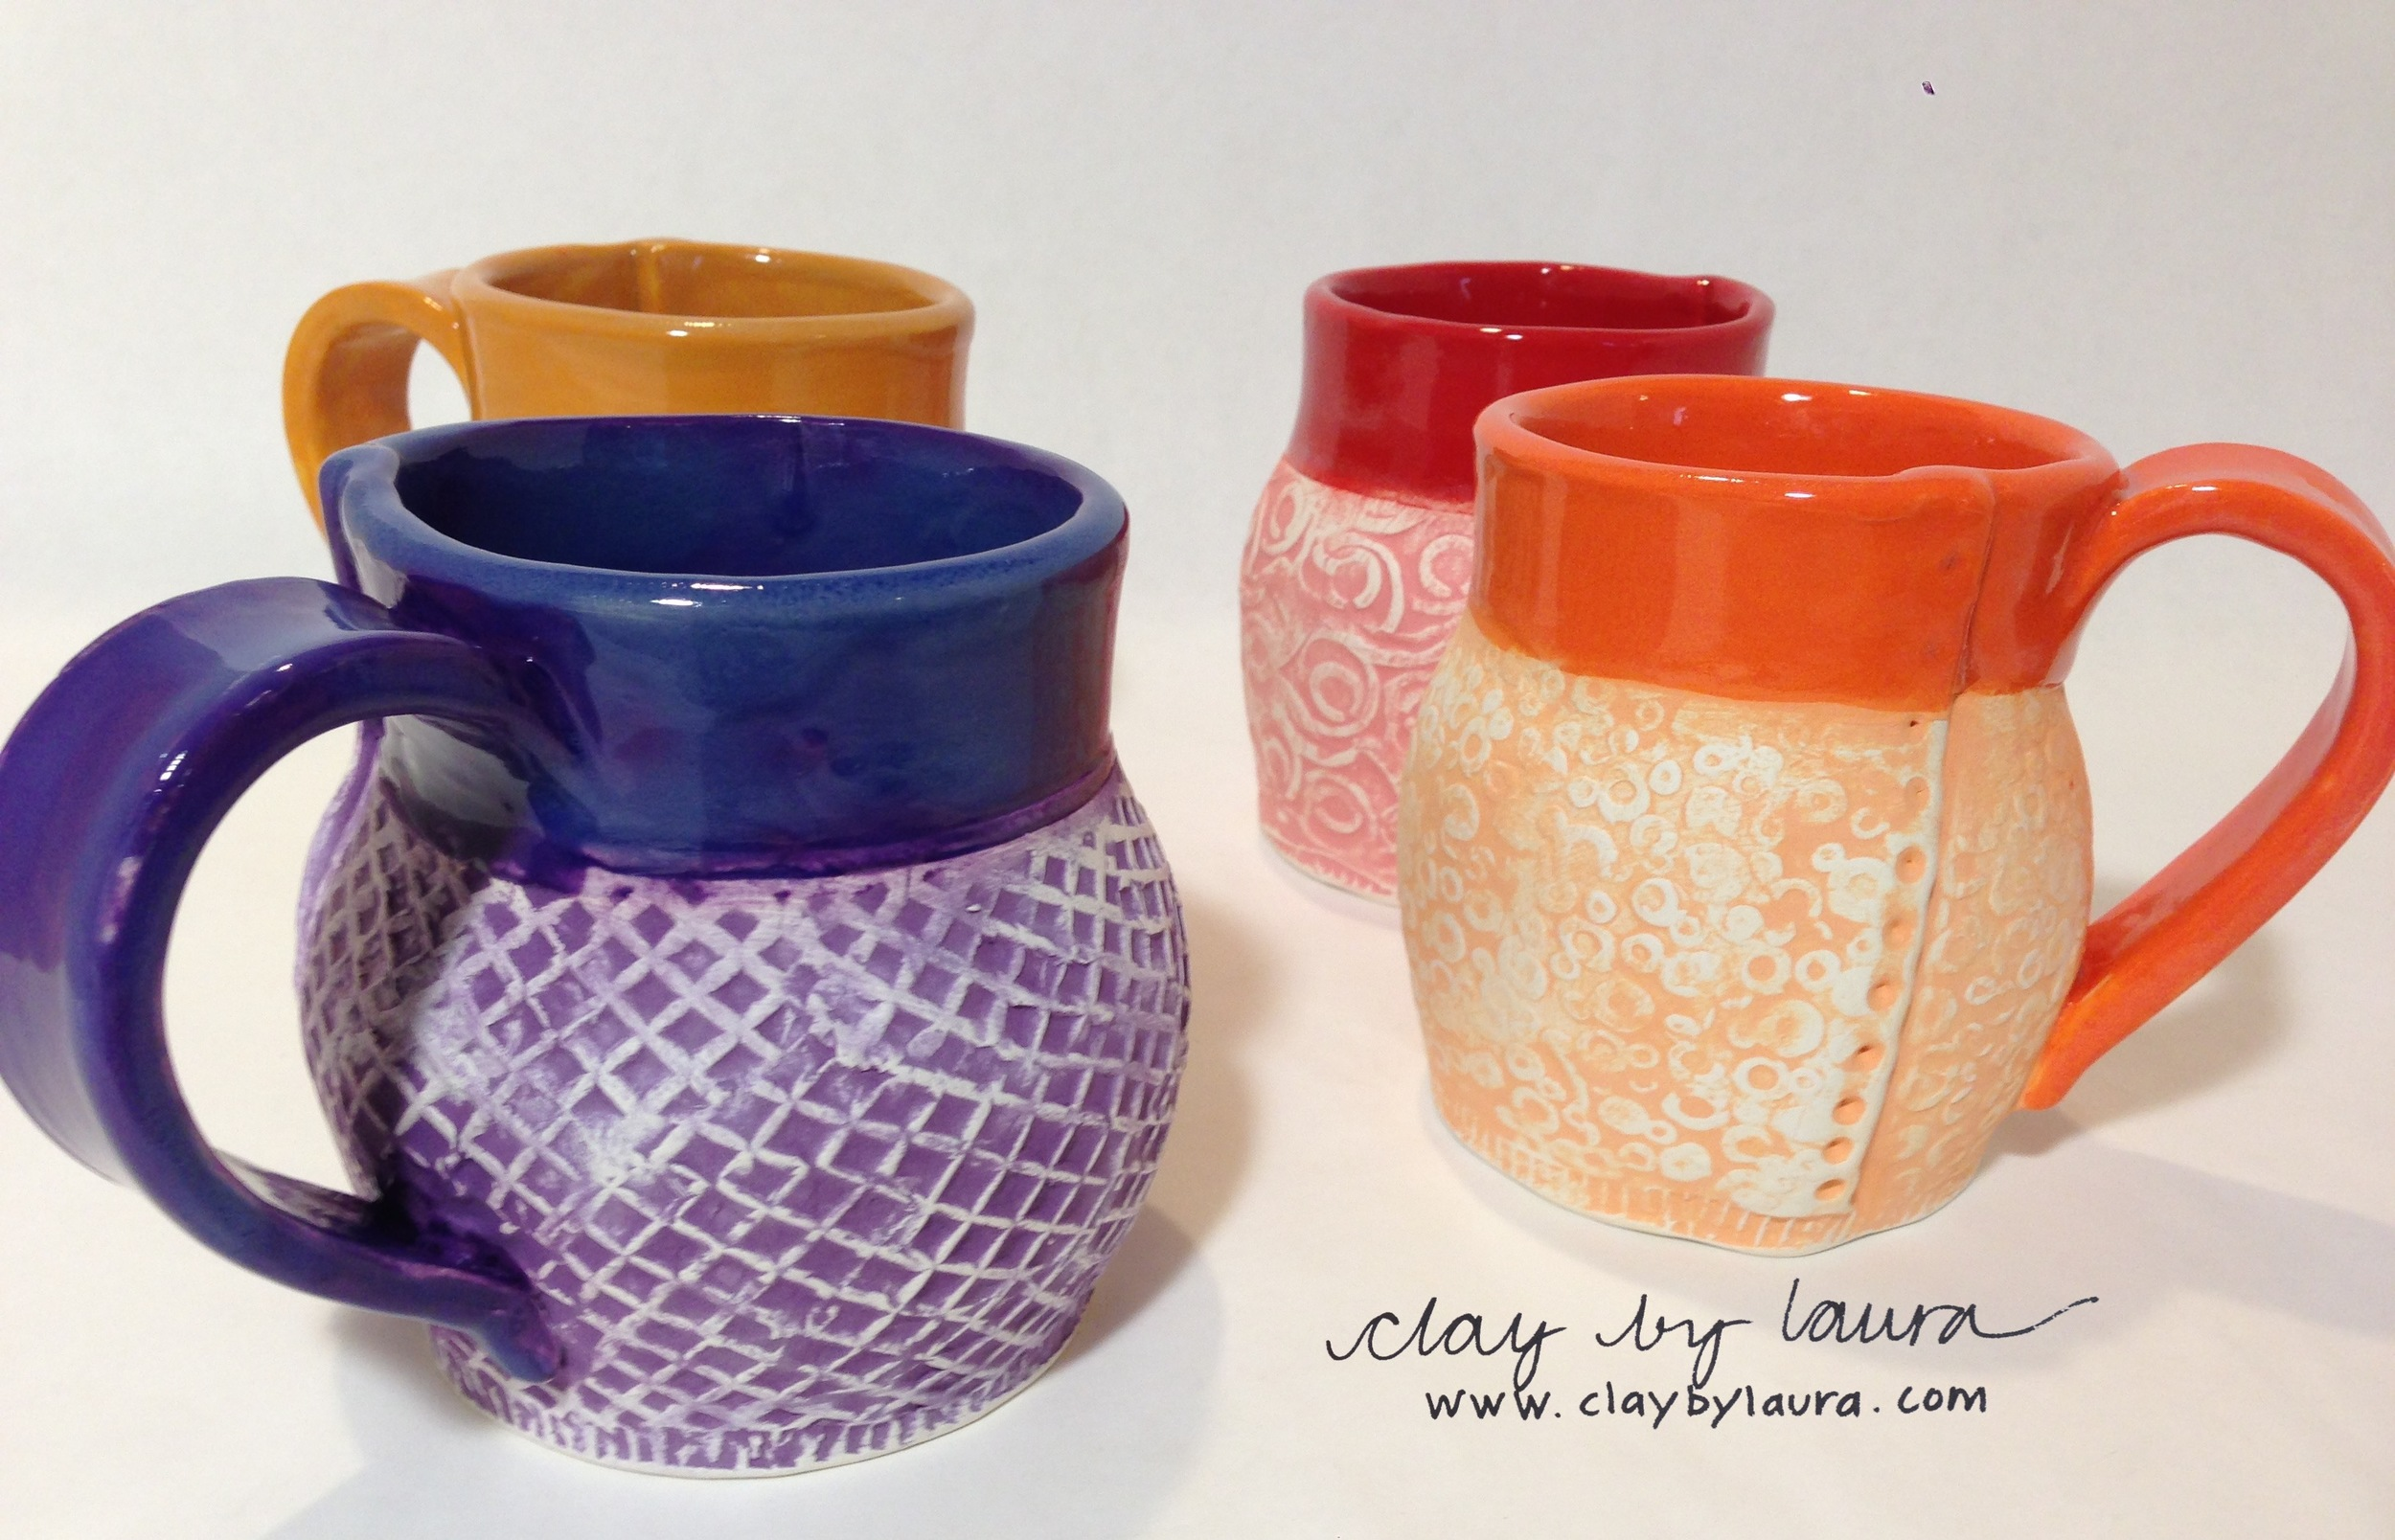 Color highlights the texture of this mug set.